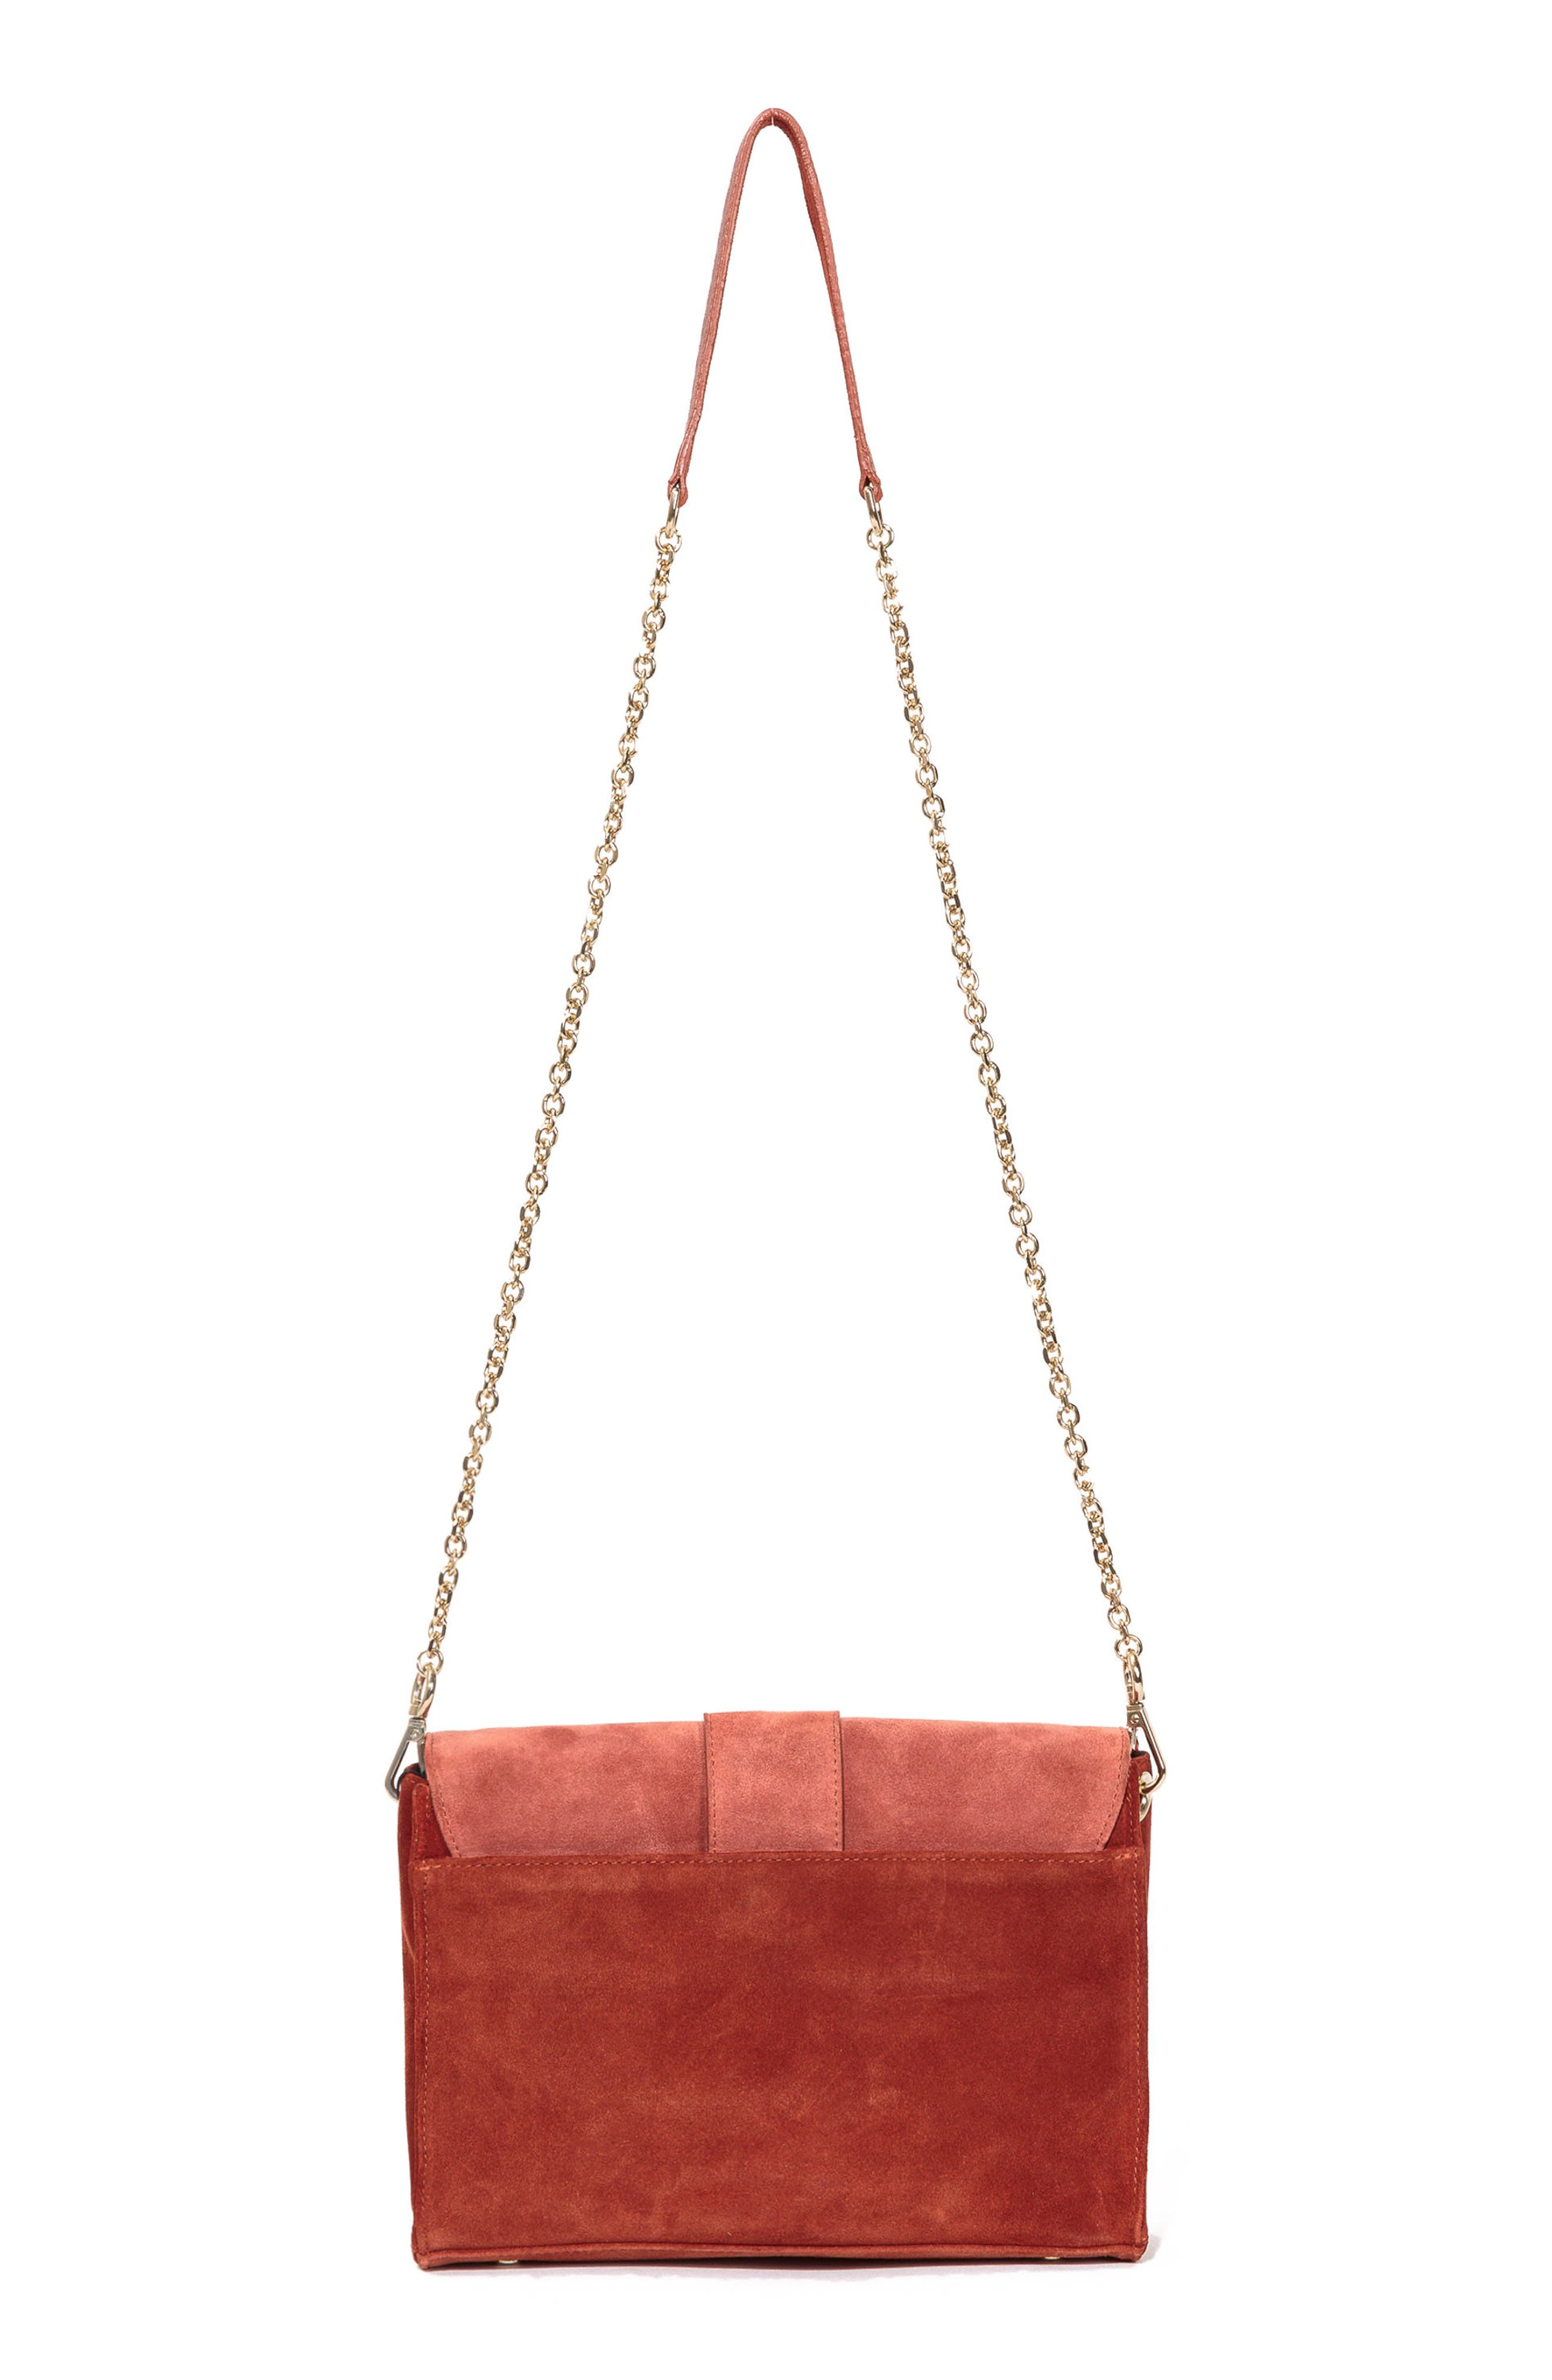 Tiger Crossbody Bag,                             Alternate thumbnail 3, color,                             Terracotta